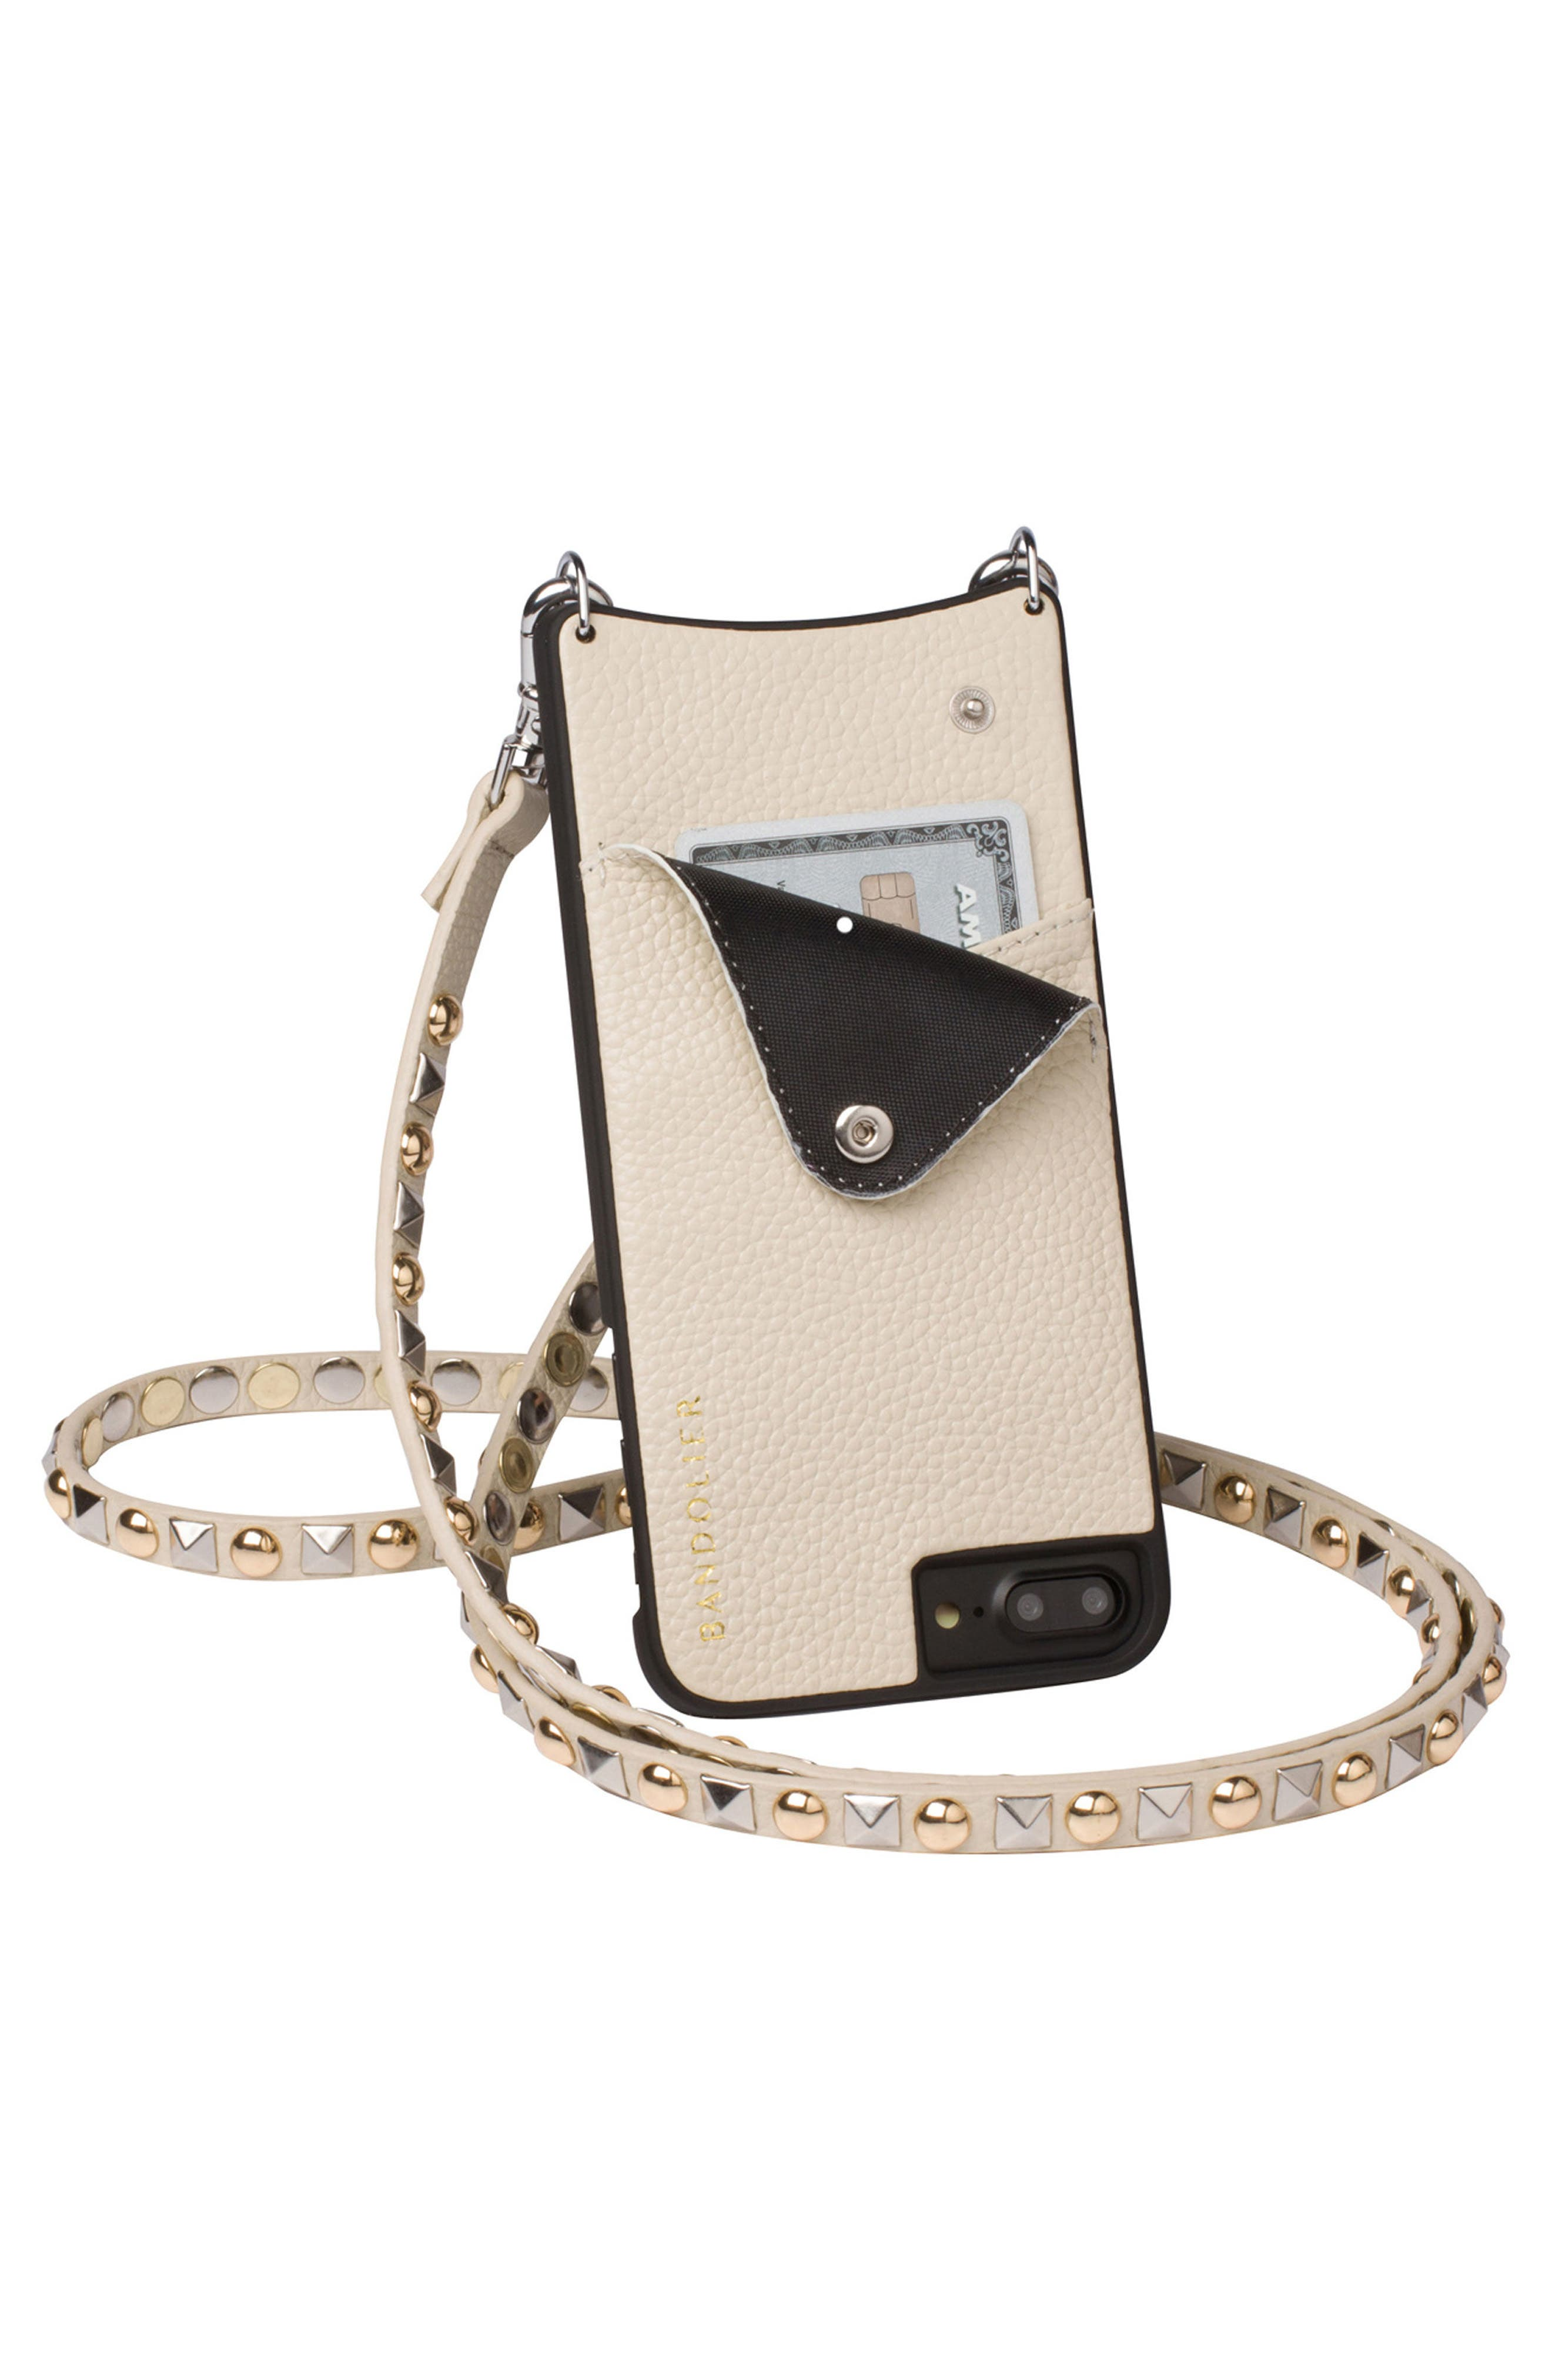 Stella iPhone 6/7/8 & 6/7/8 Plus Leather Crossbody Case,                             Alternate thumbnail 6, color,                             Pebble/ Gold/ Silver